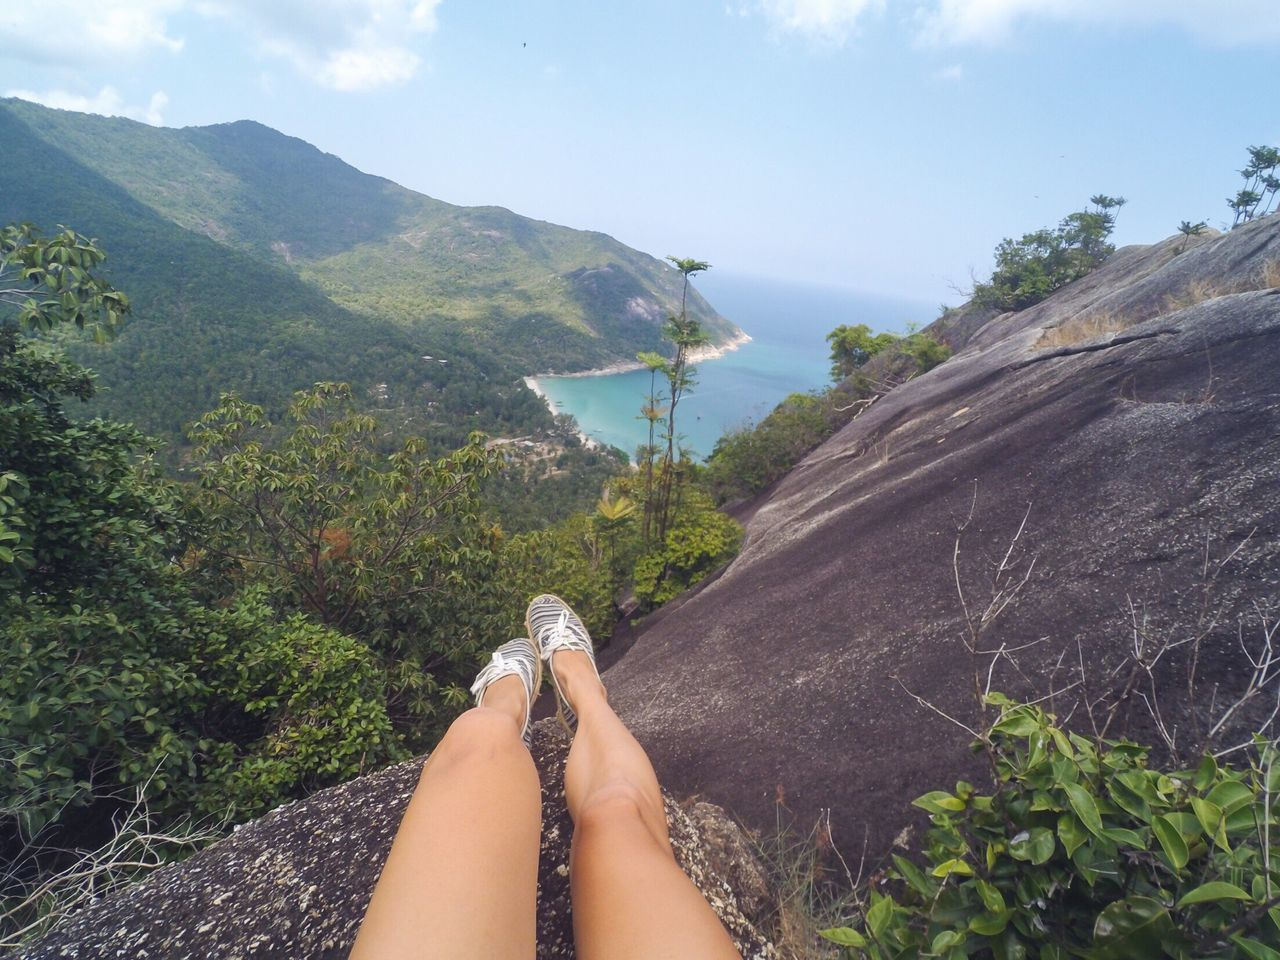 Low Section Human Leg Personal Perspective One Person Real People Human Foot Mountain Travel Destinations Nature Beauty In Nature Hiking Athleisure Shoes Rock - Object Rock Formation Beautiful View Human Body Part Women Outdoors Lifestyles Koh Phangan Tree Plant Scenics